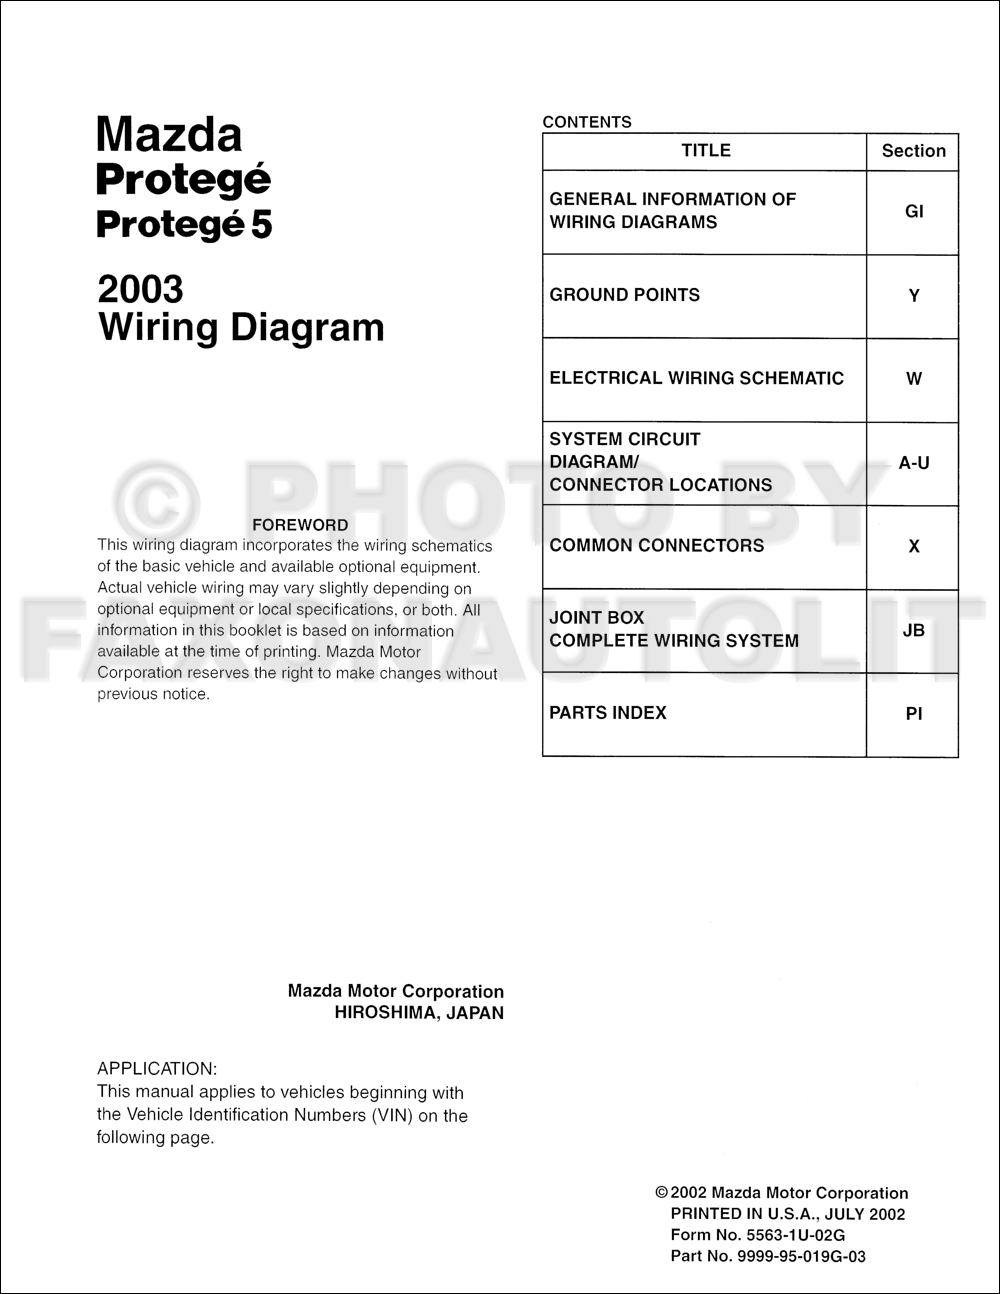 2003 Mazda Protege and Protege5 Wiring Diagram Manual Original. click on  thumbnail to zoom